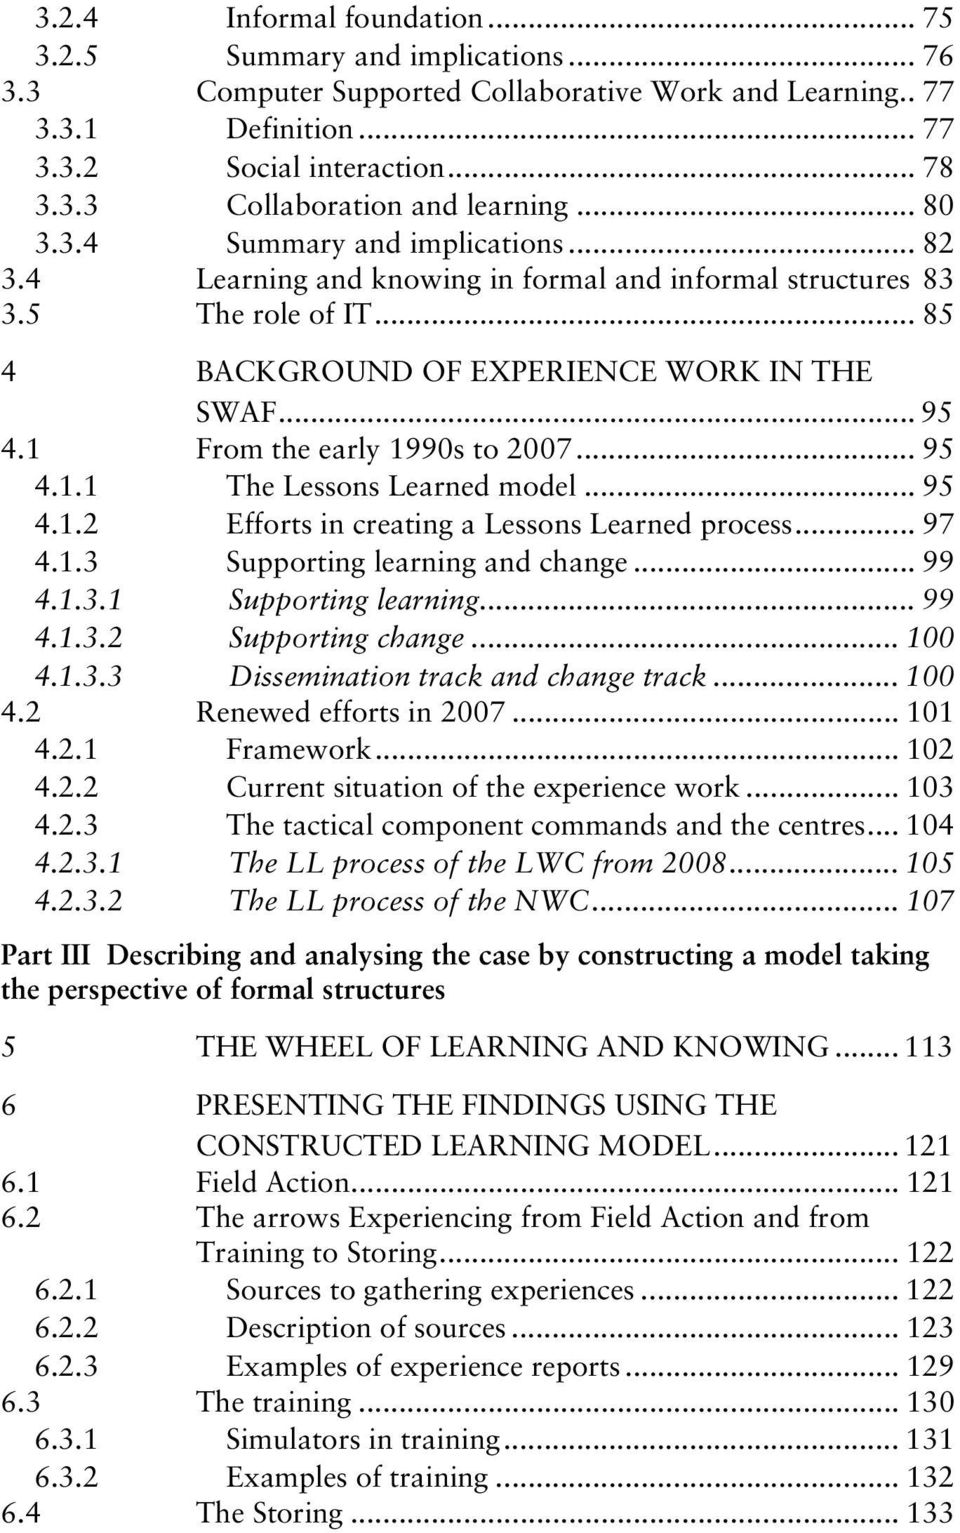 1 From the early 1990s to 2007... 95 4.1.1 The Lessons Learned model... 95 4.1.2 Efforts in creating a Lessons Learned process... 97 4.1.3 Supporting learning and change... 99 4.1.3.1 Supporting learning.